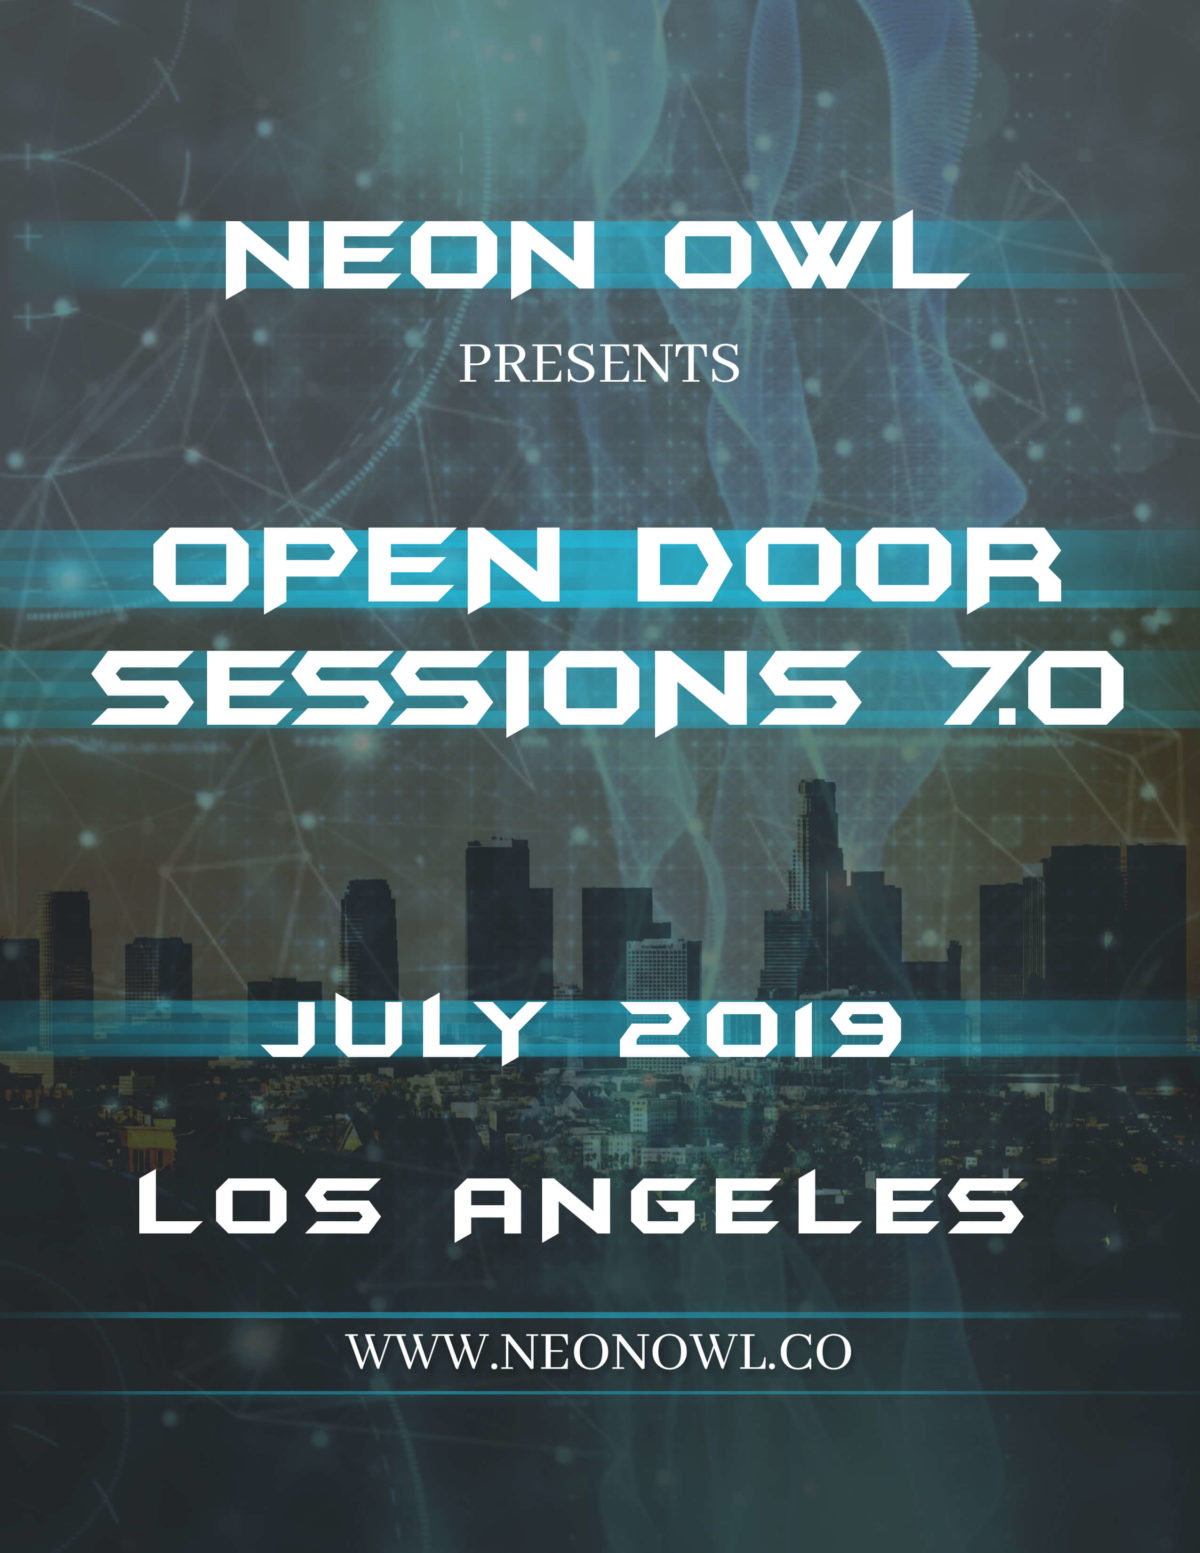 Open Door Sessions 7.0